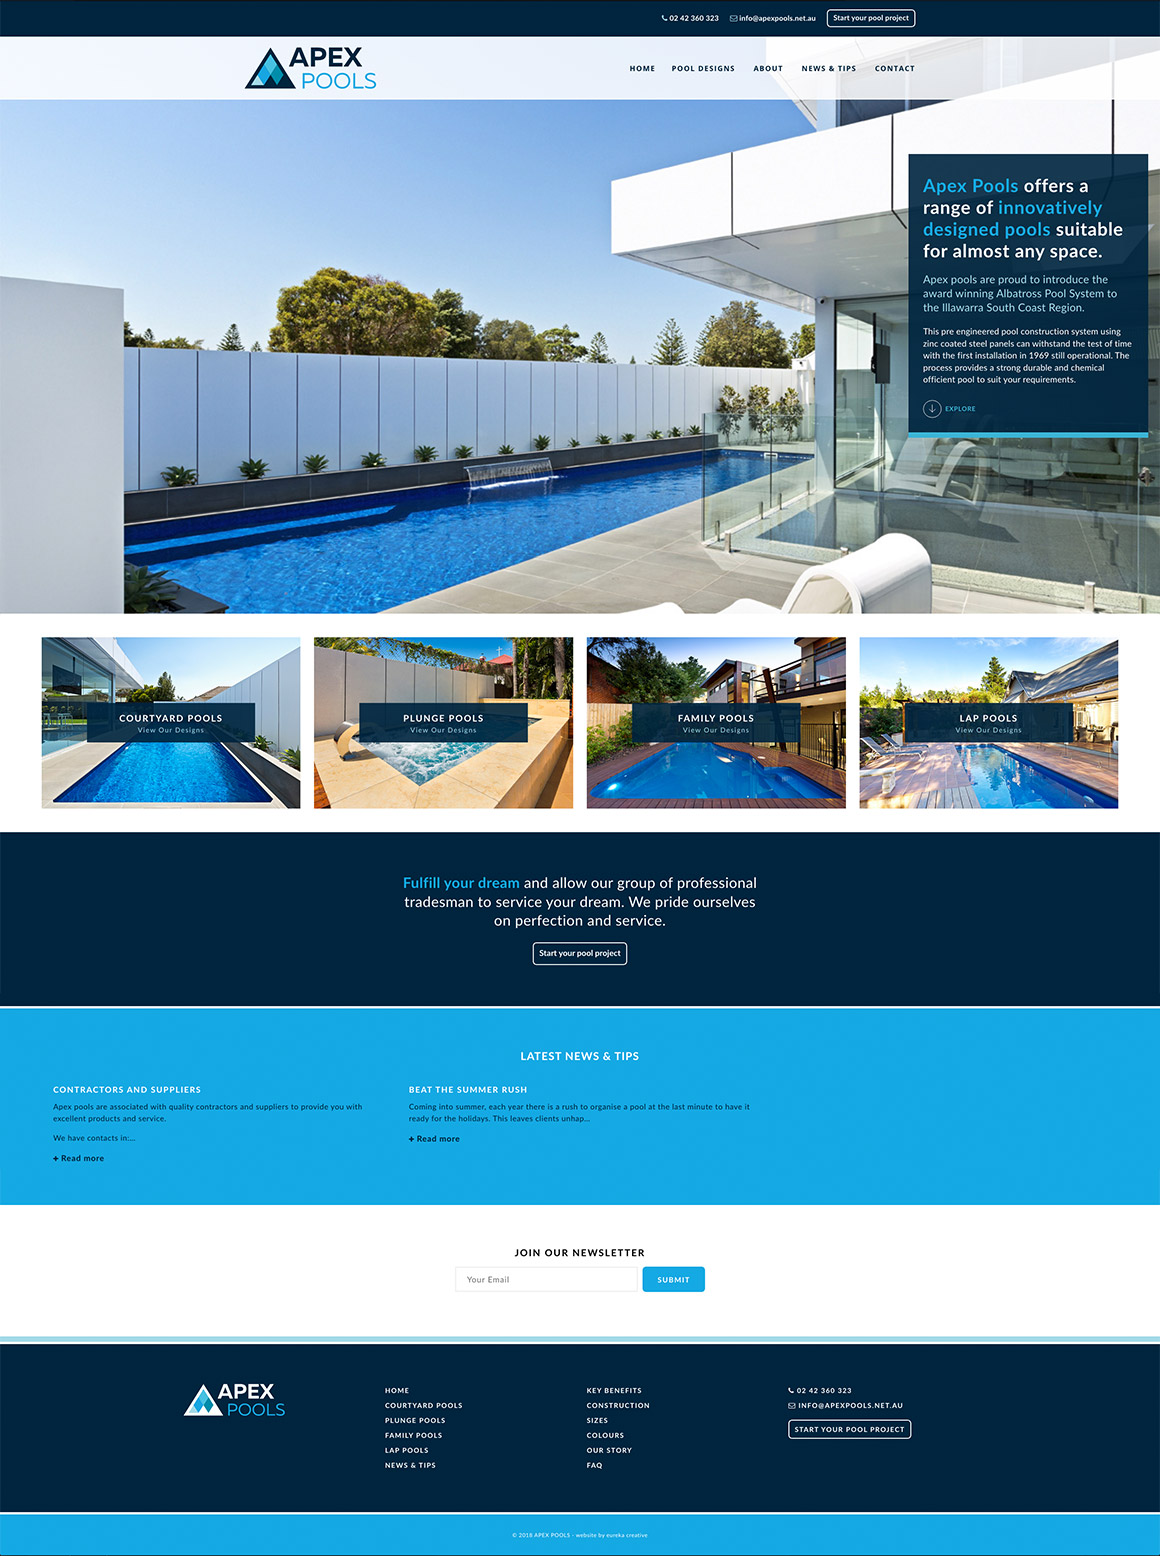 Apex Pools Responsive Website Design and Development